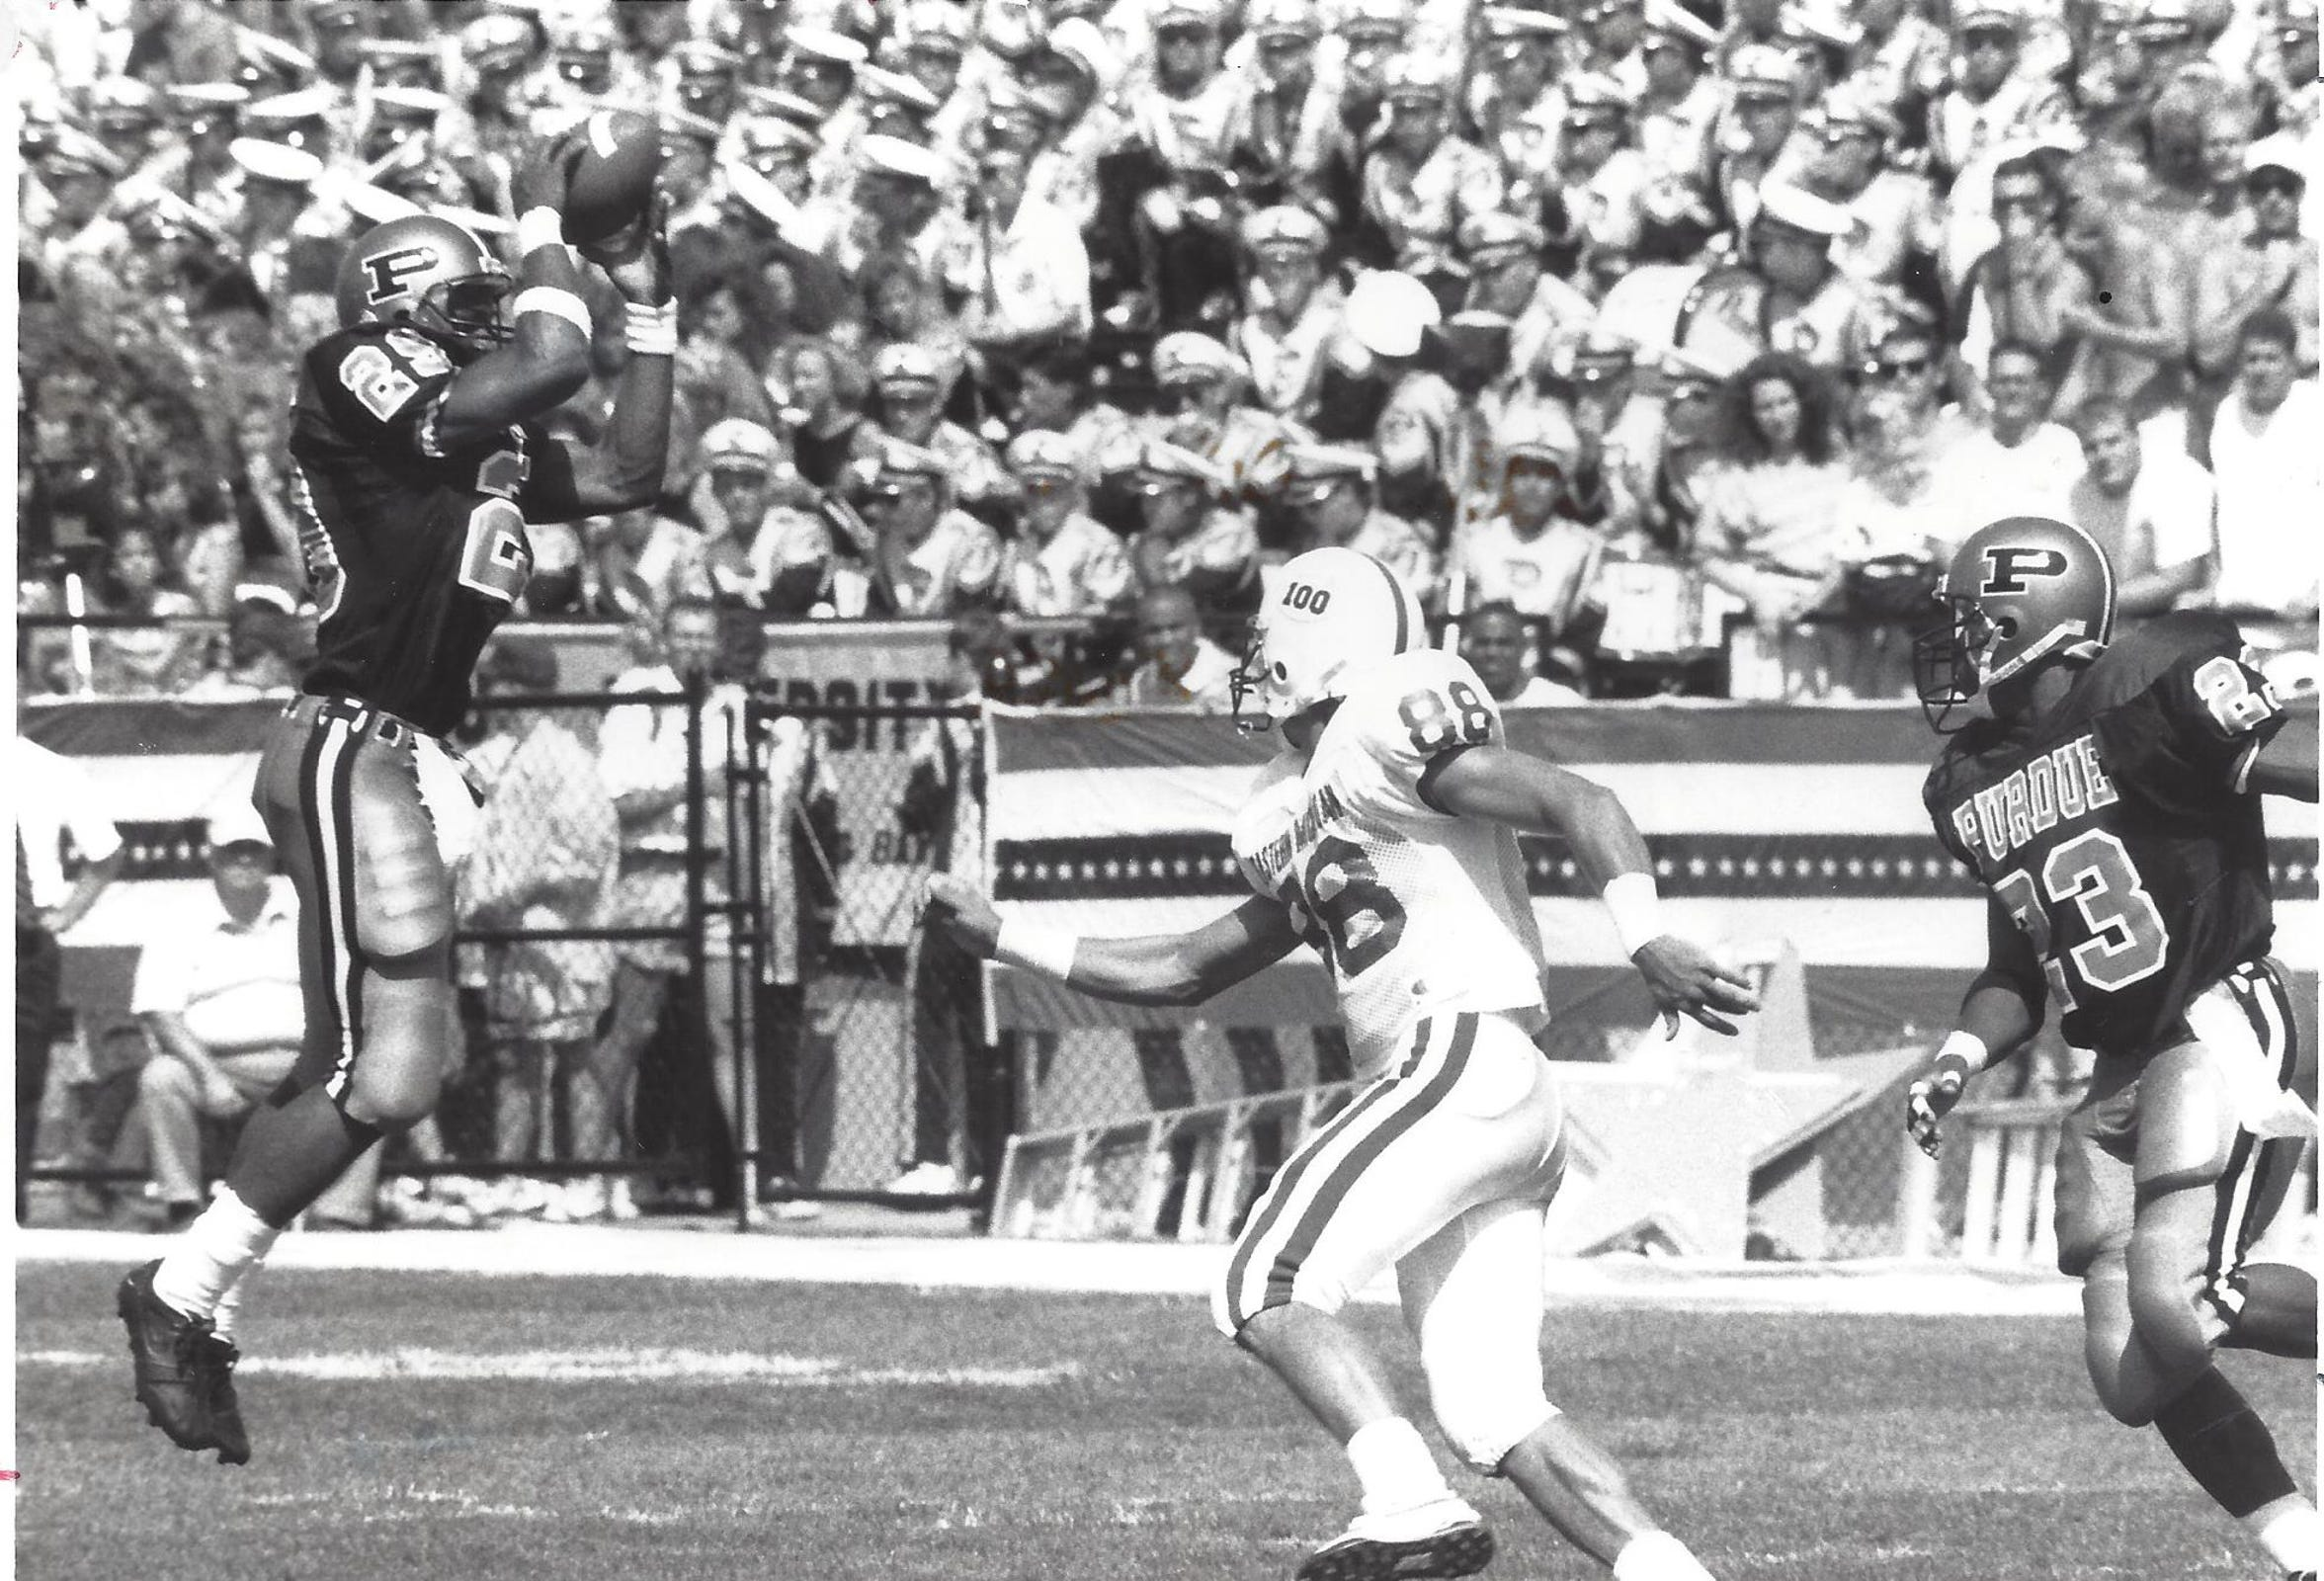 Purdue safety Pat Johnson corrals an interception during an early 1990s game at Ross-Ade Stadium.